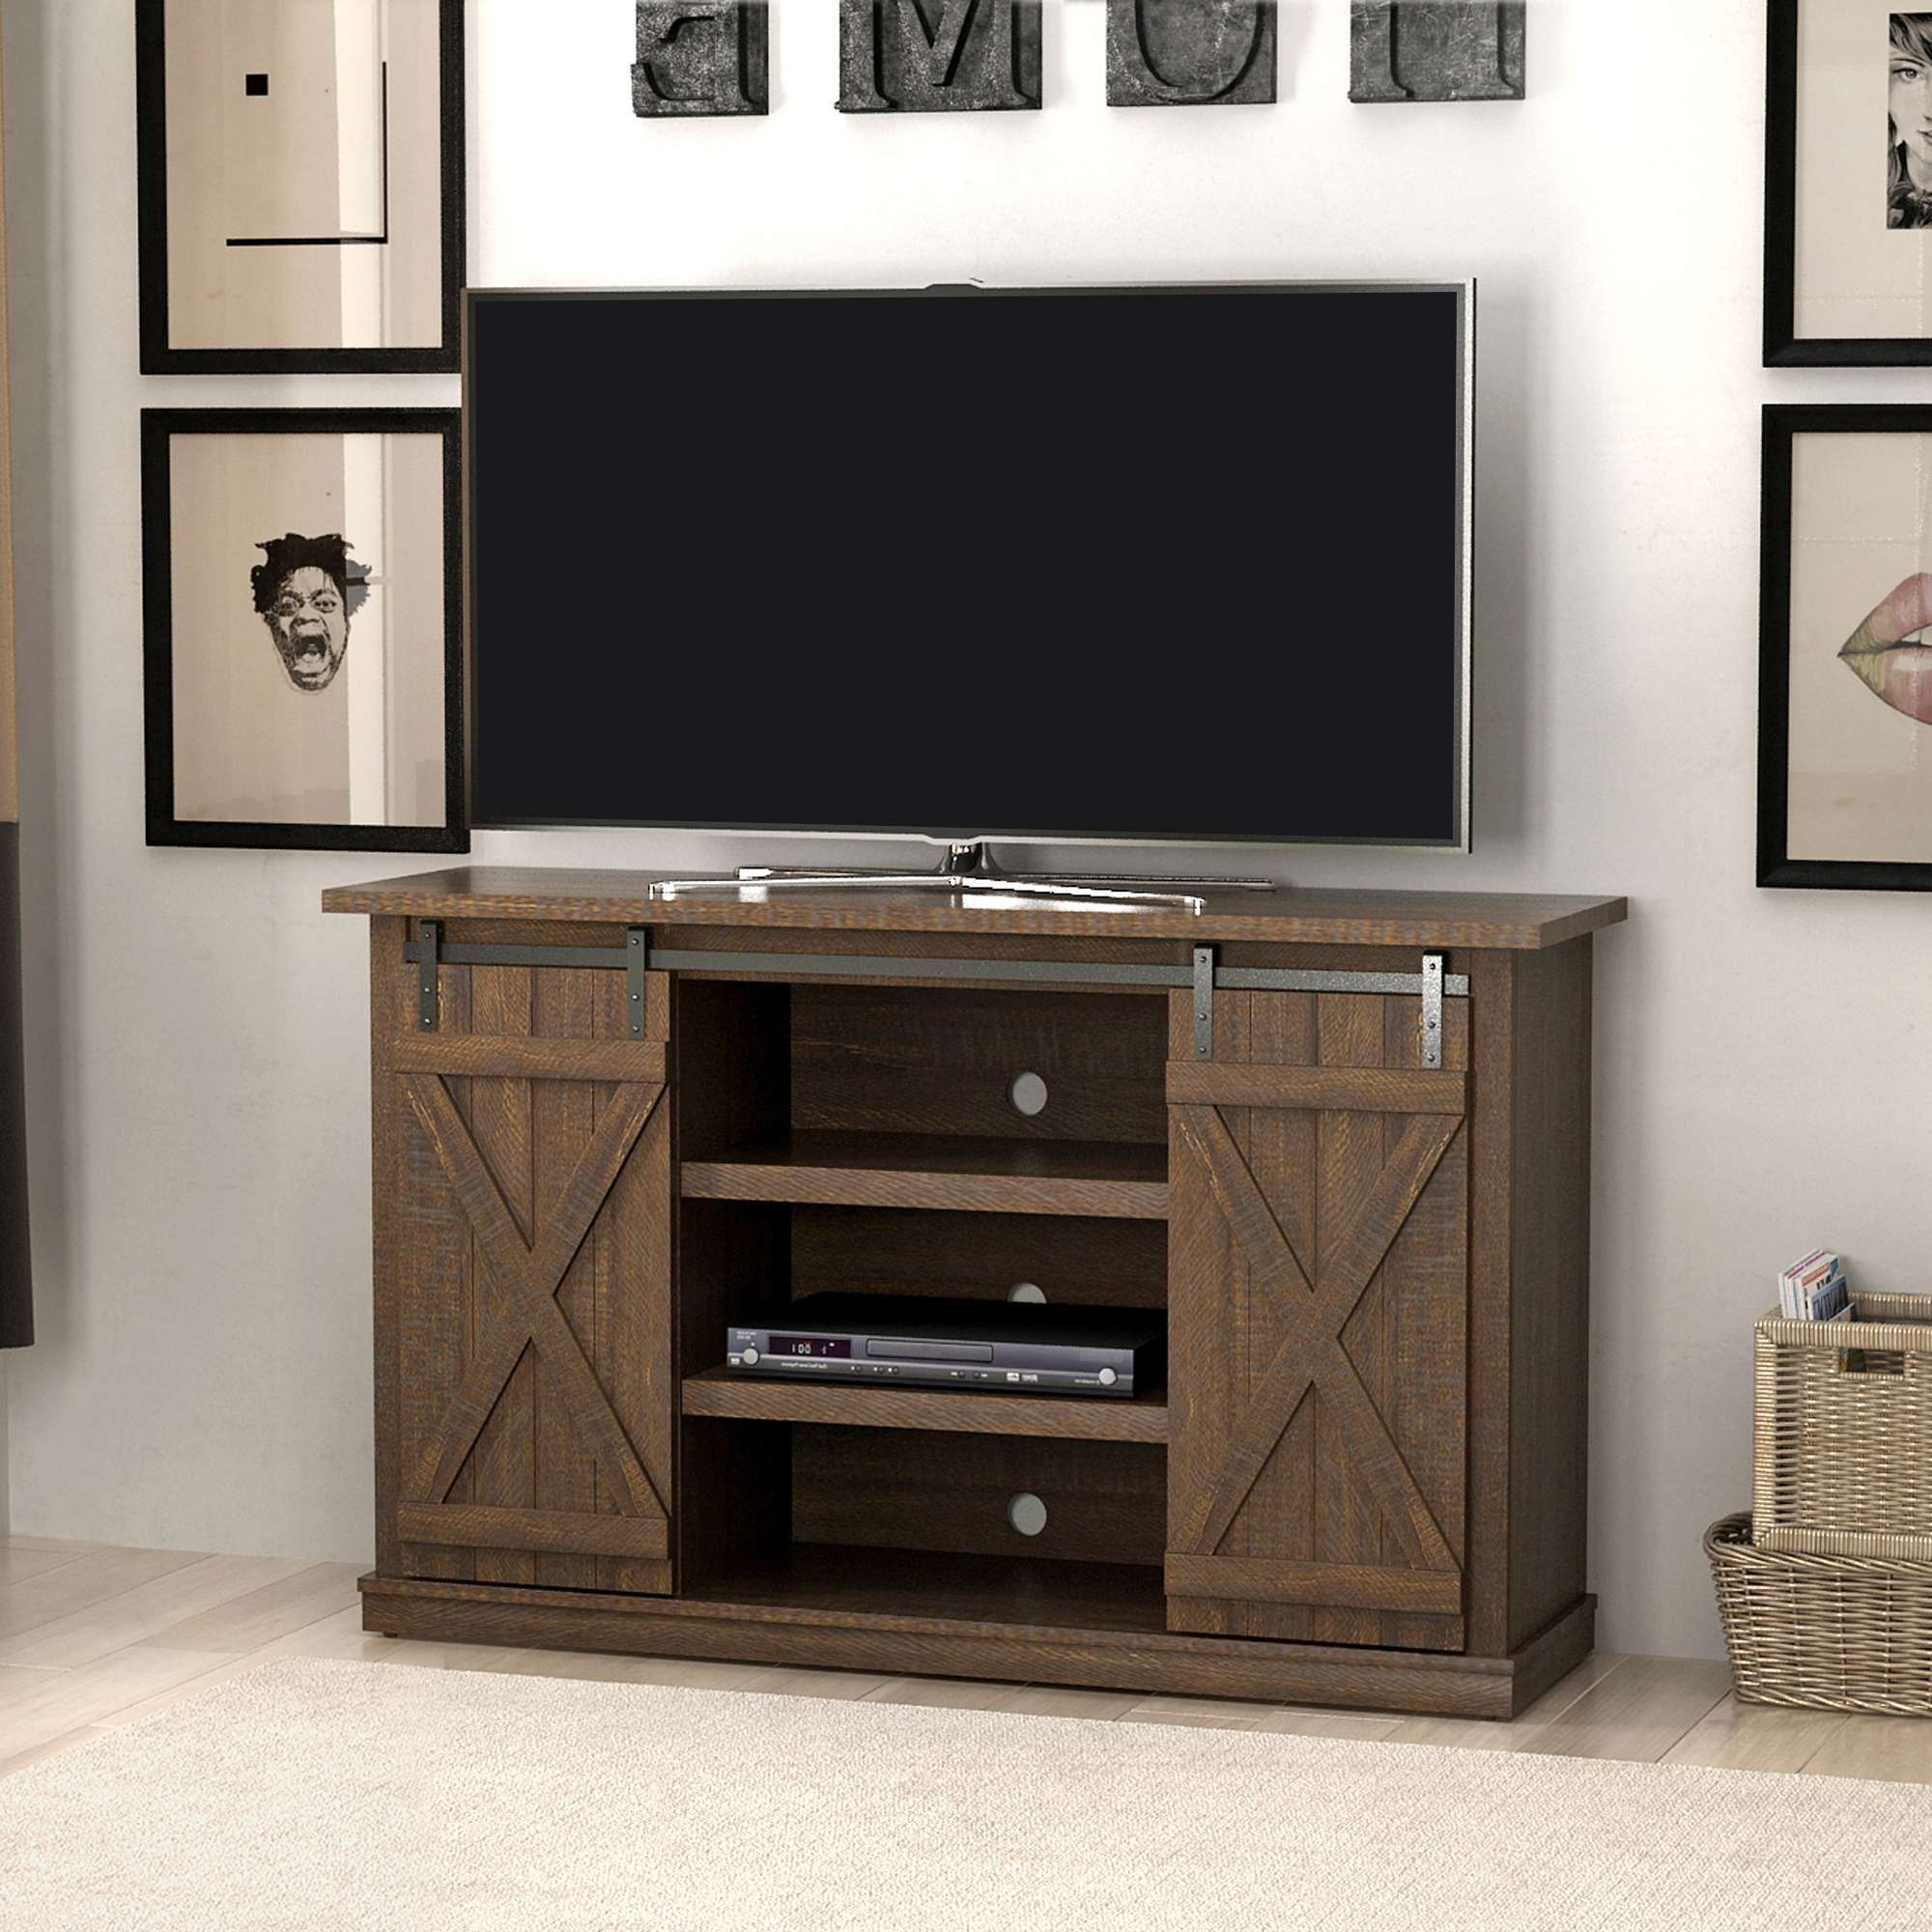 Tv Stands – Walmart With 24 Inch Tall Tv Stands (View 5 of 15)